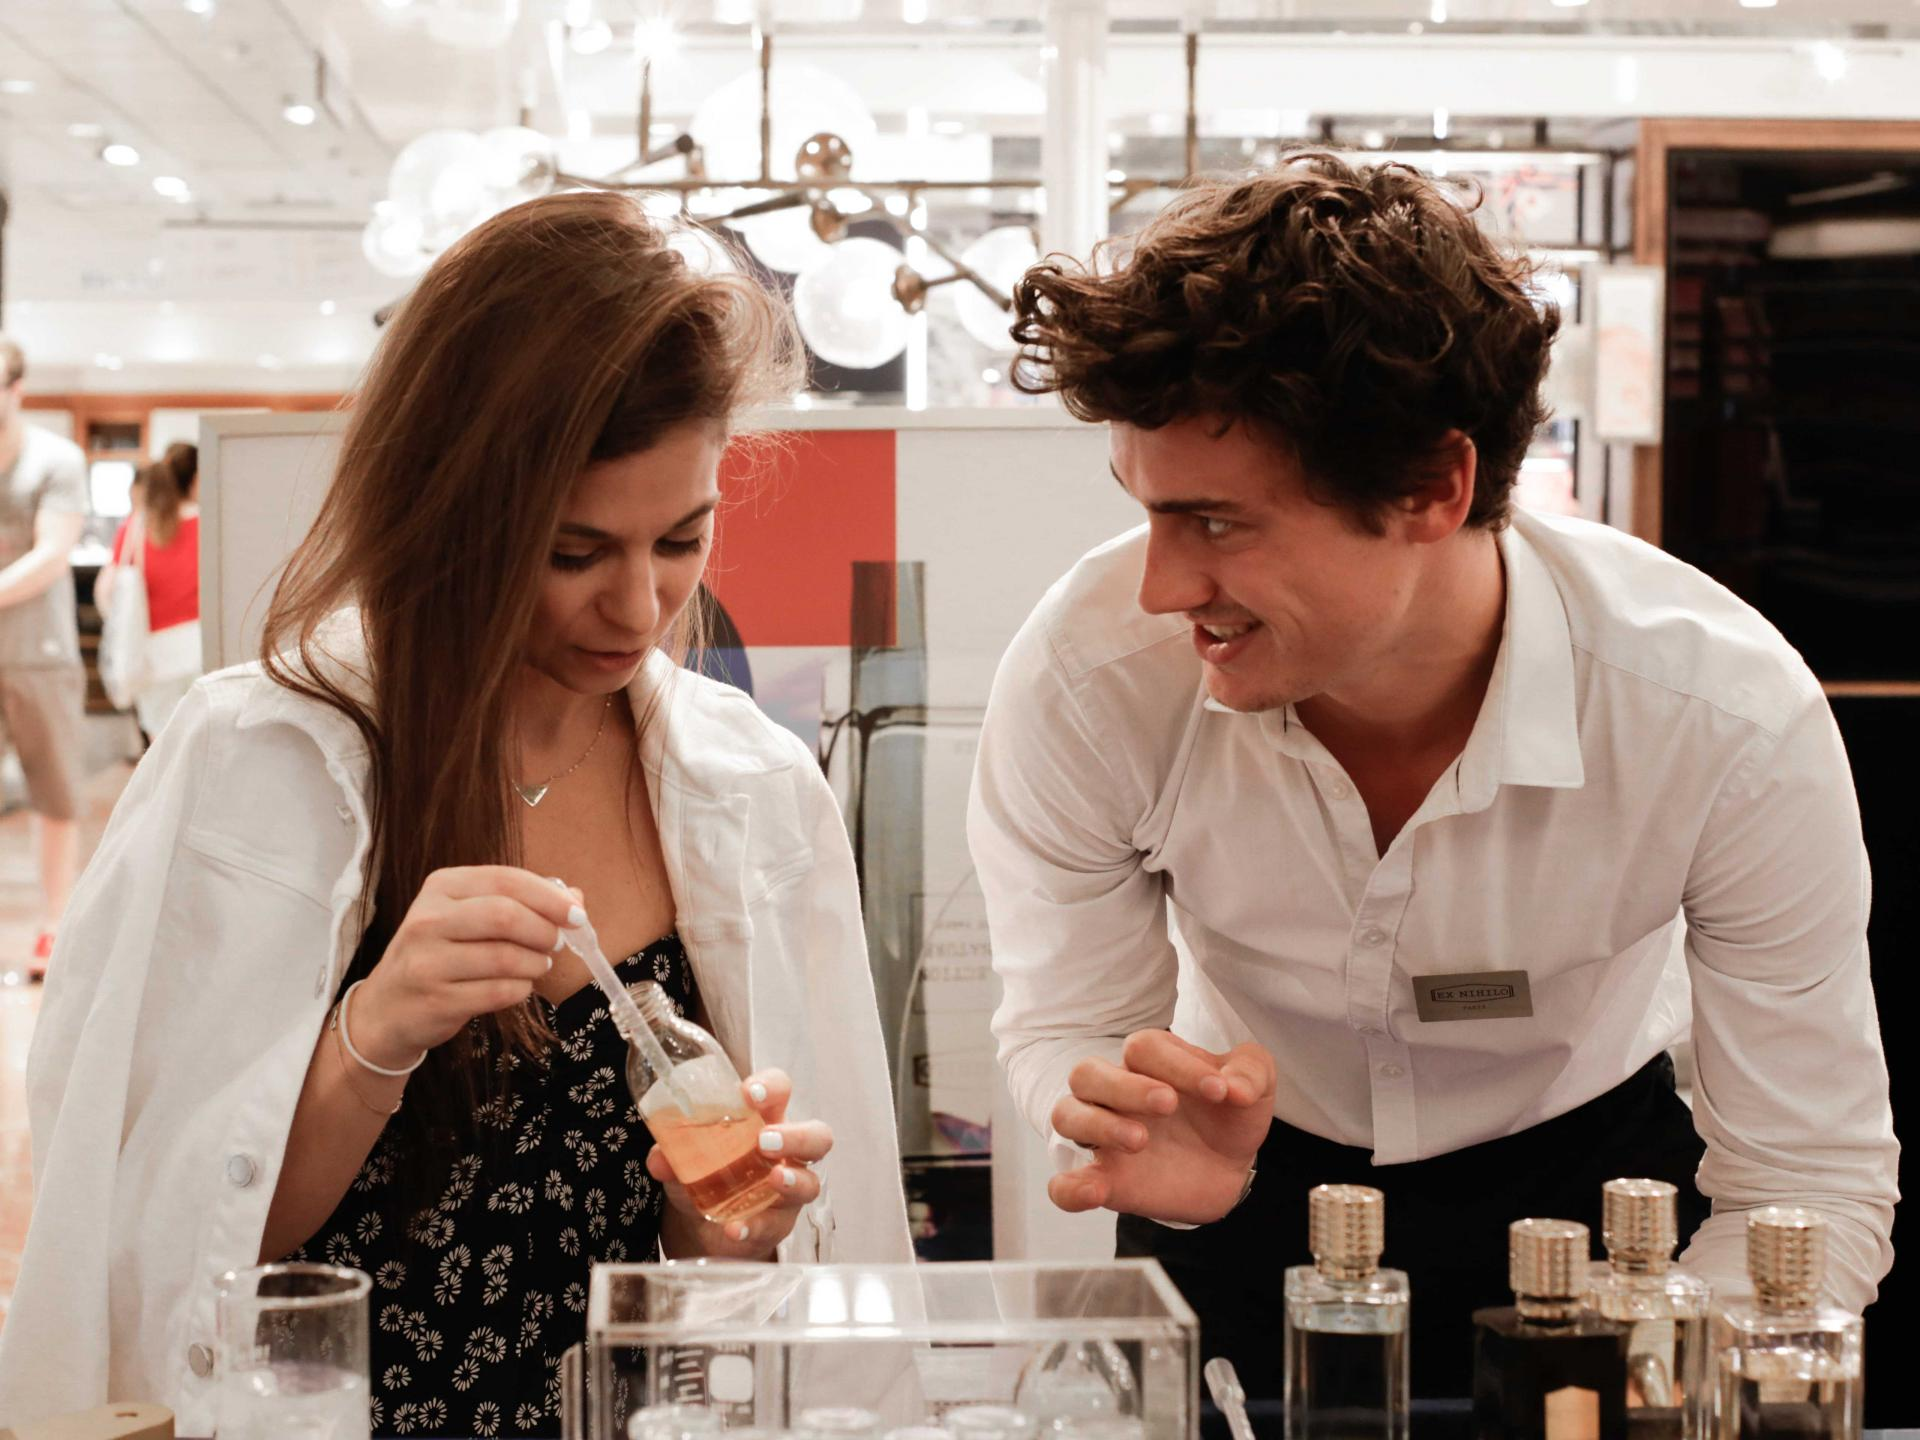 customize your own perfume at galeries lafayette